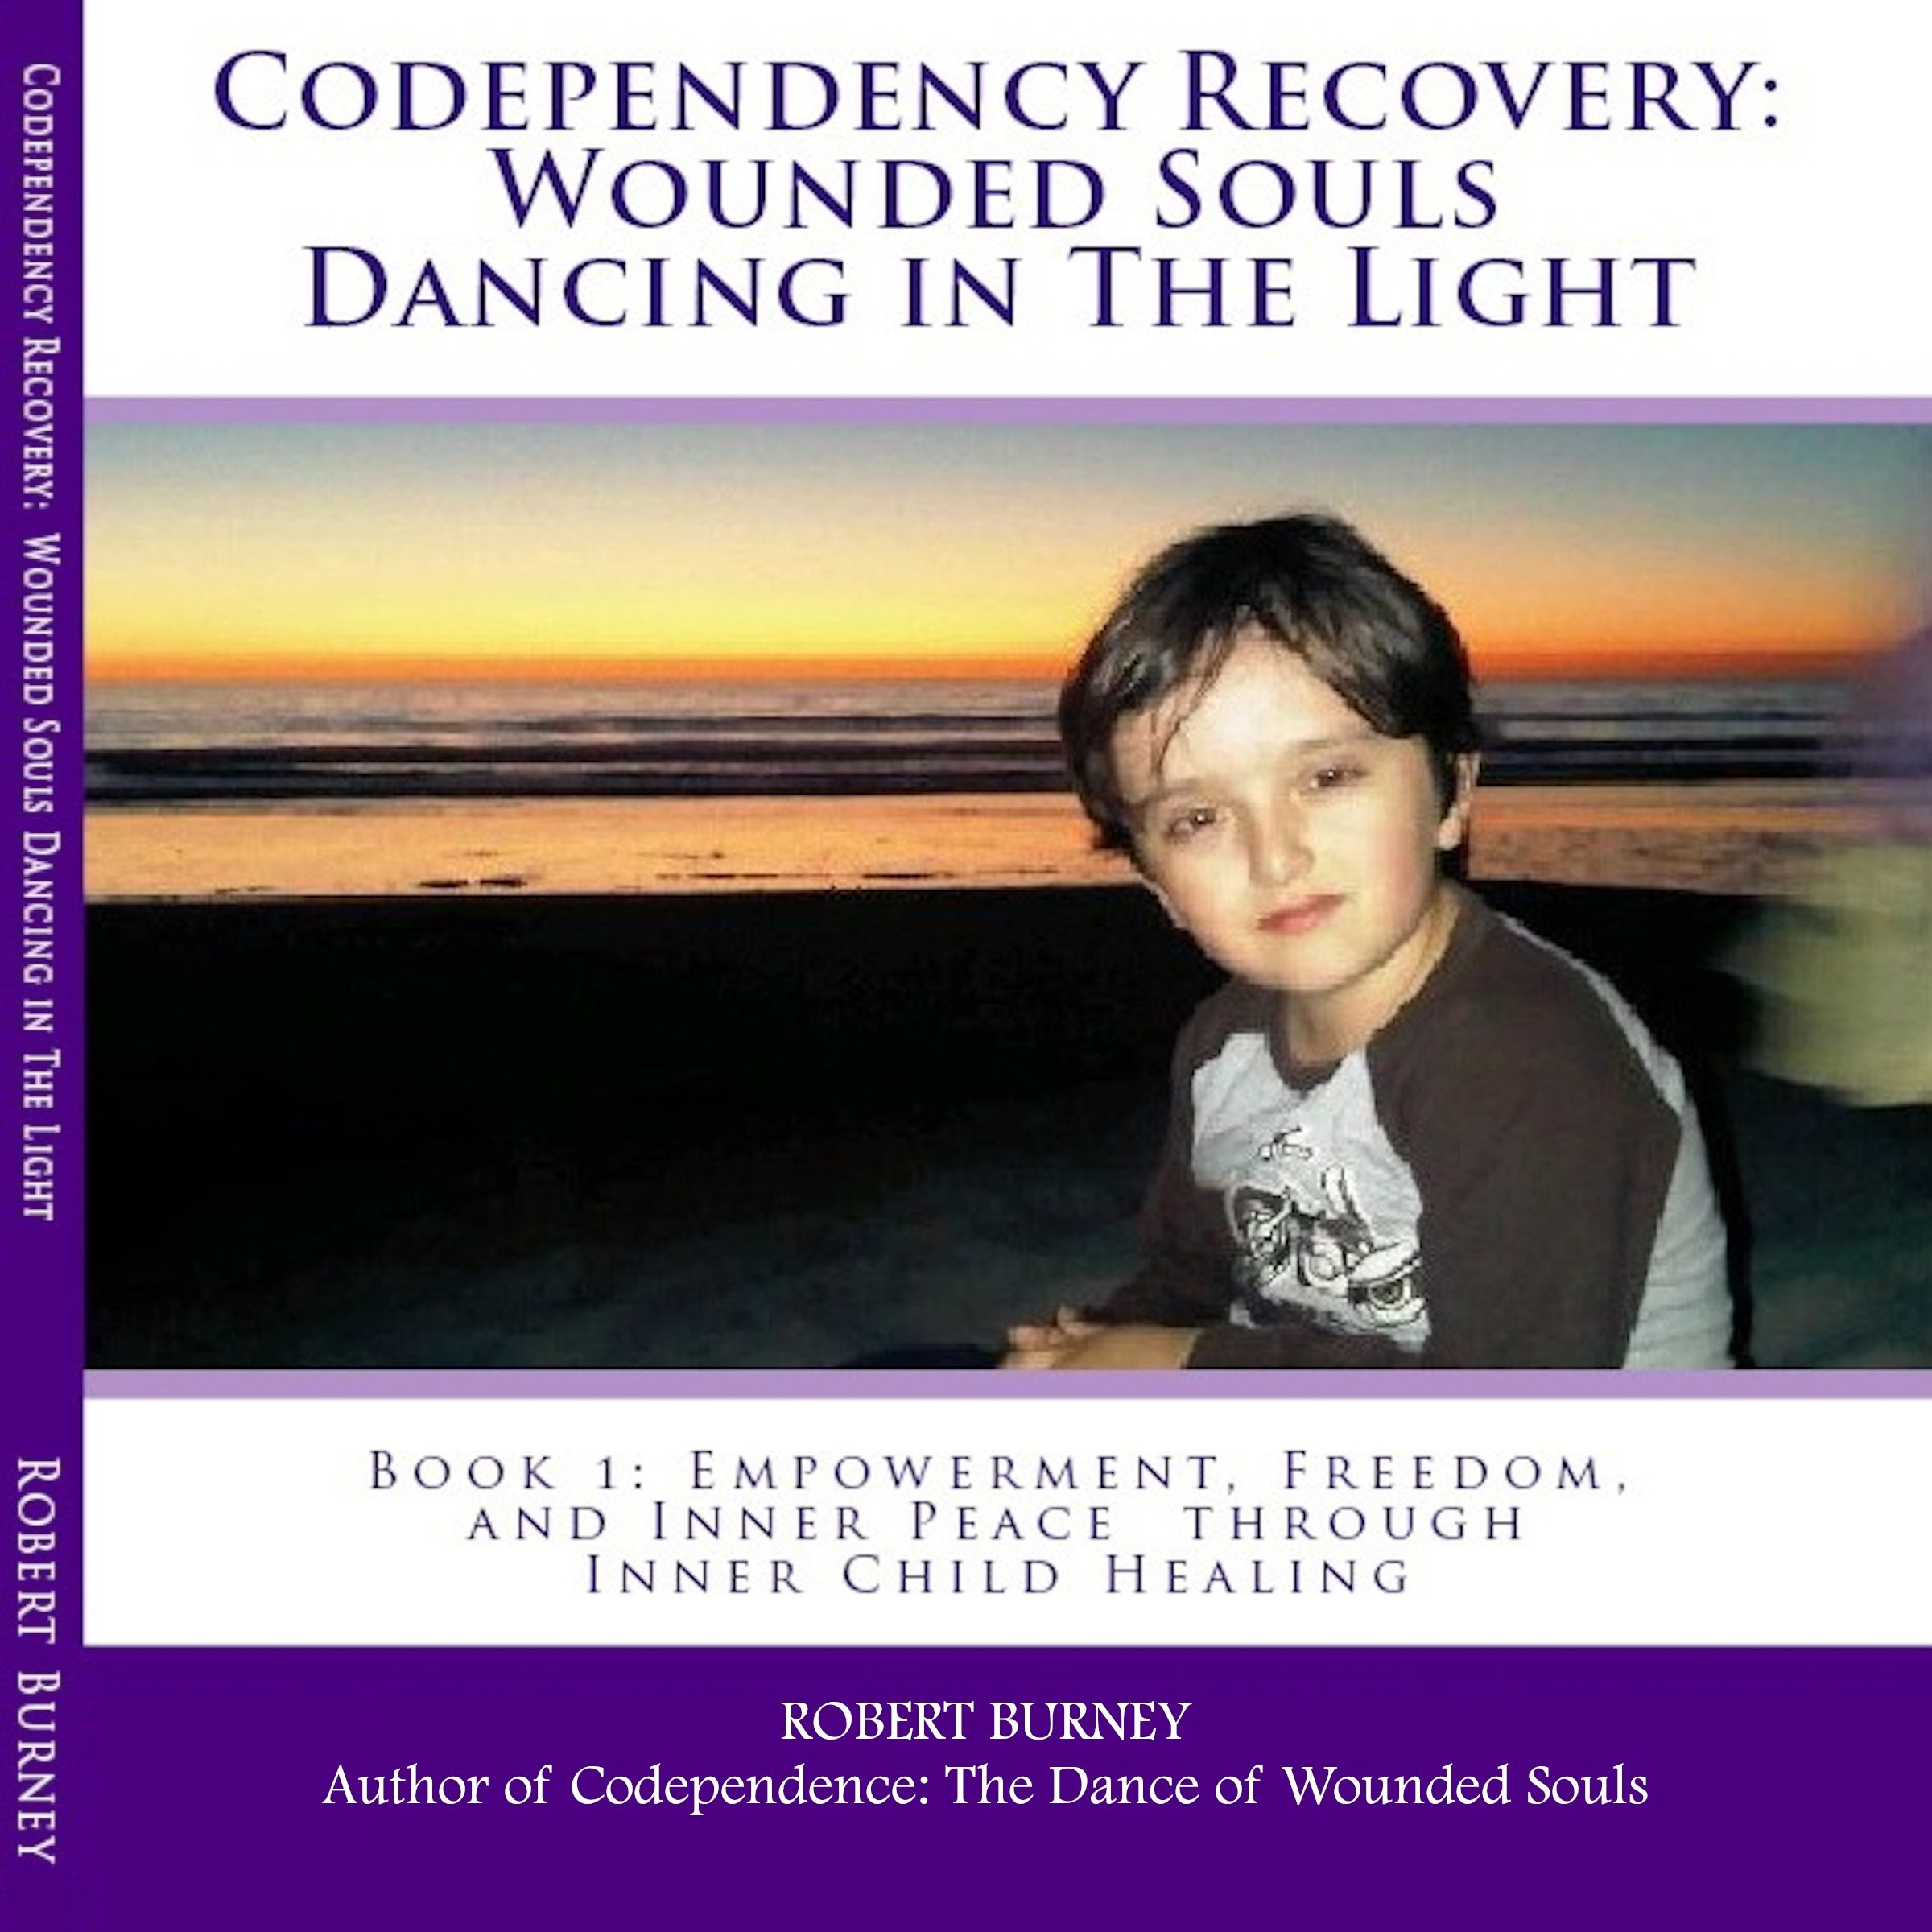 Codependency Recovery: Wounded Souls Dancing in the Light: Book 1: Empowerment, Freedom, and Inner Peace Through Inner Child Healing